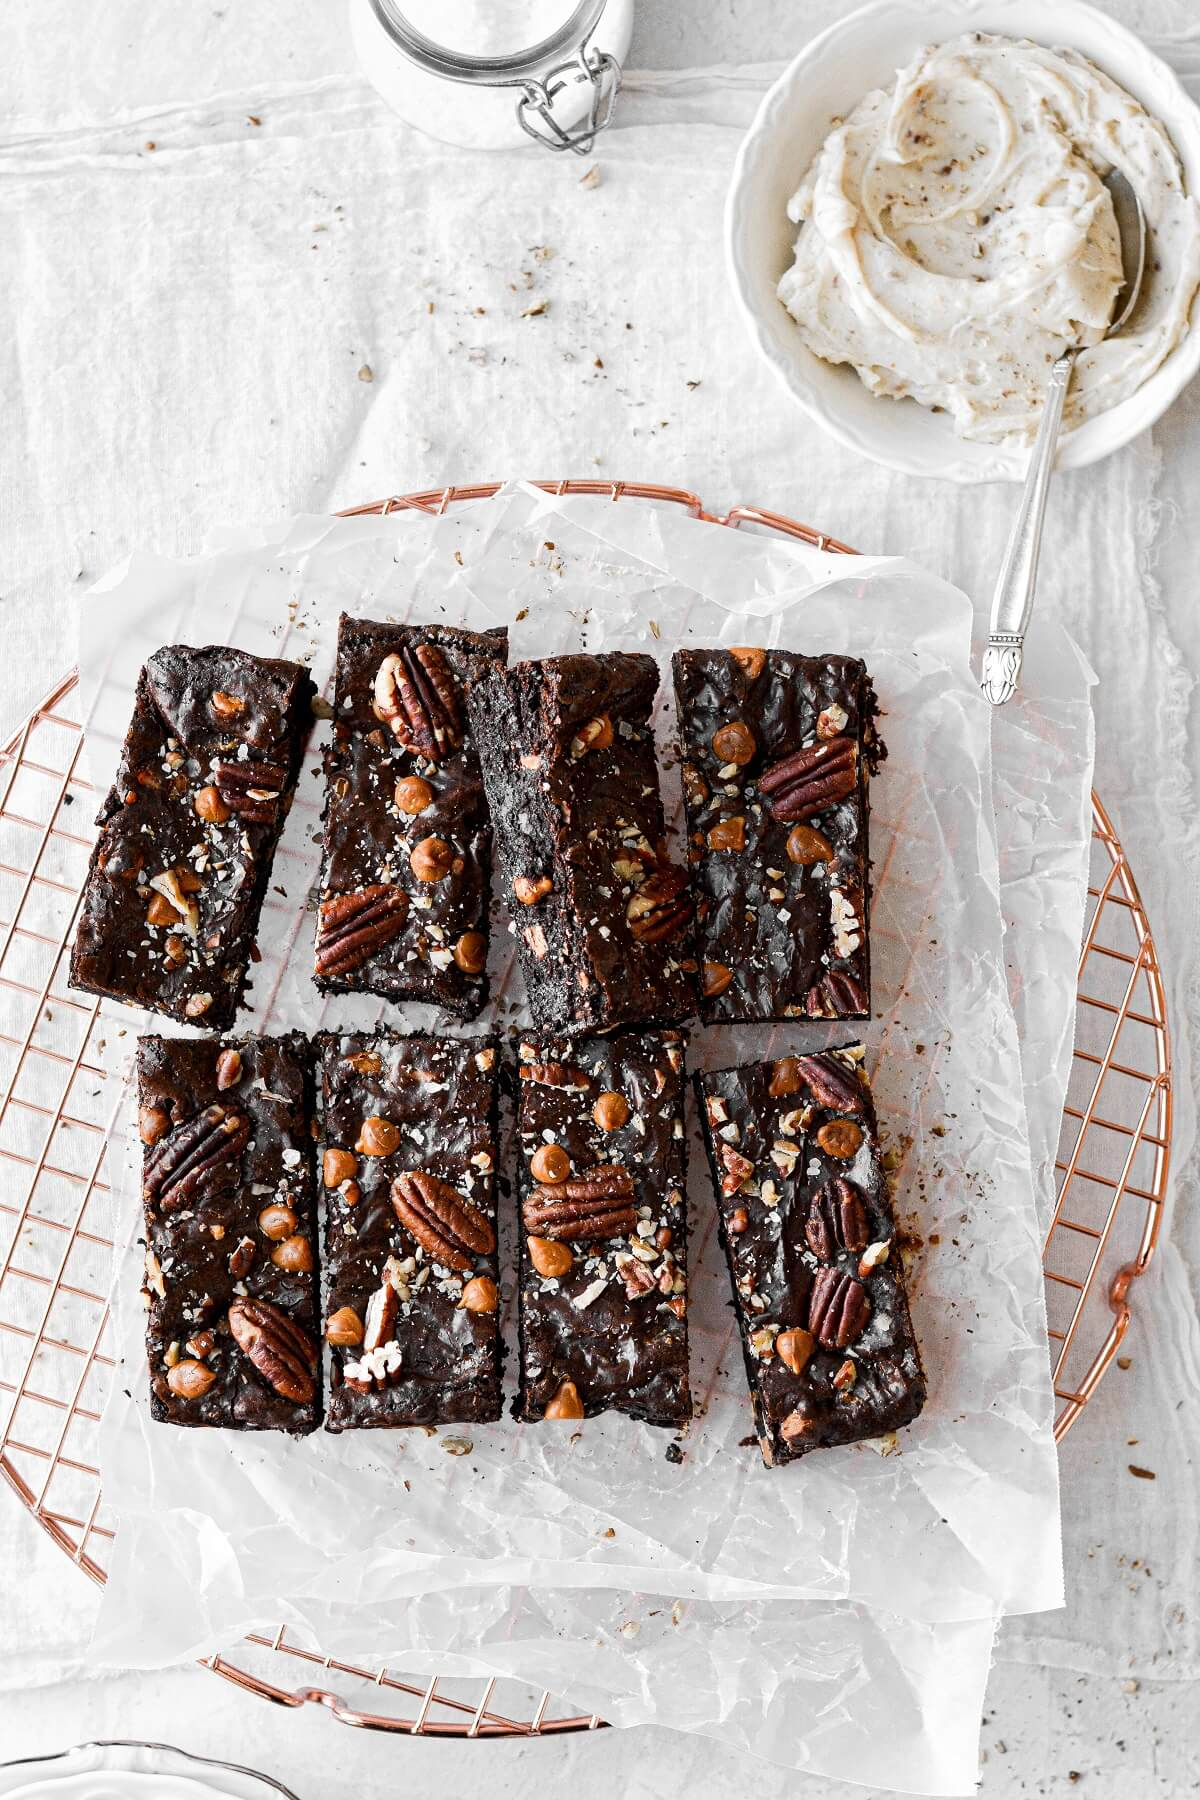 Butter pecan brownies with brown butter pecan frosting, on a copper cooling rack.